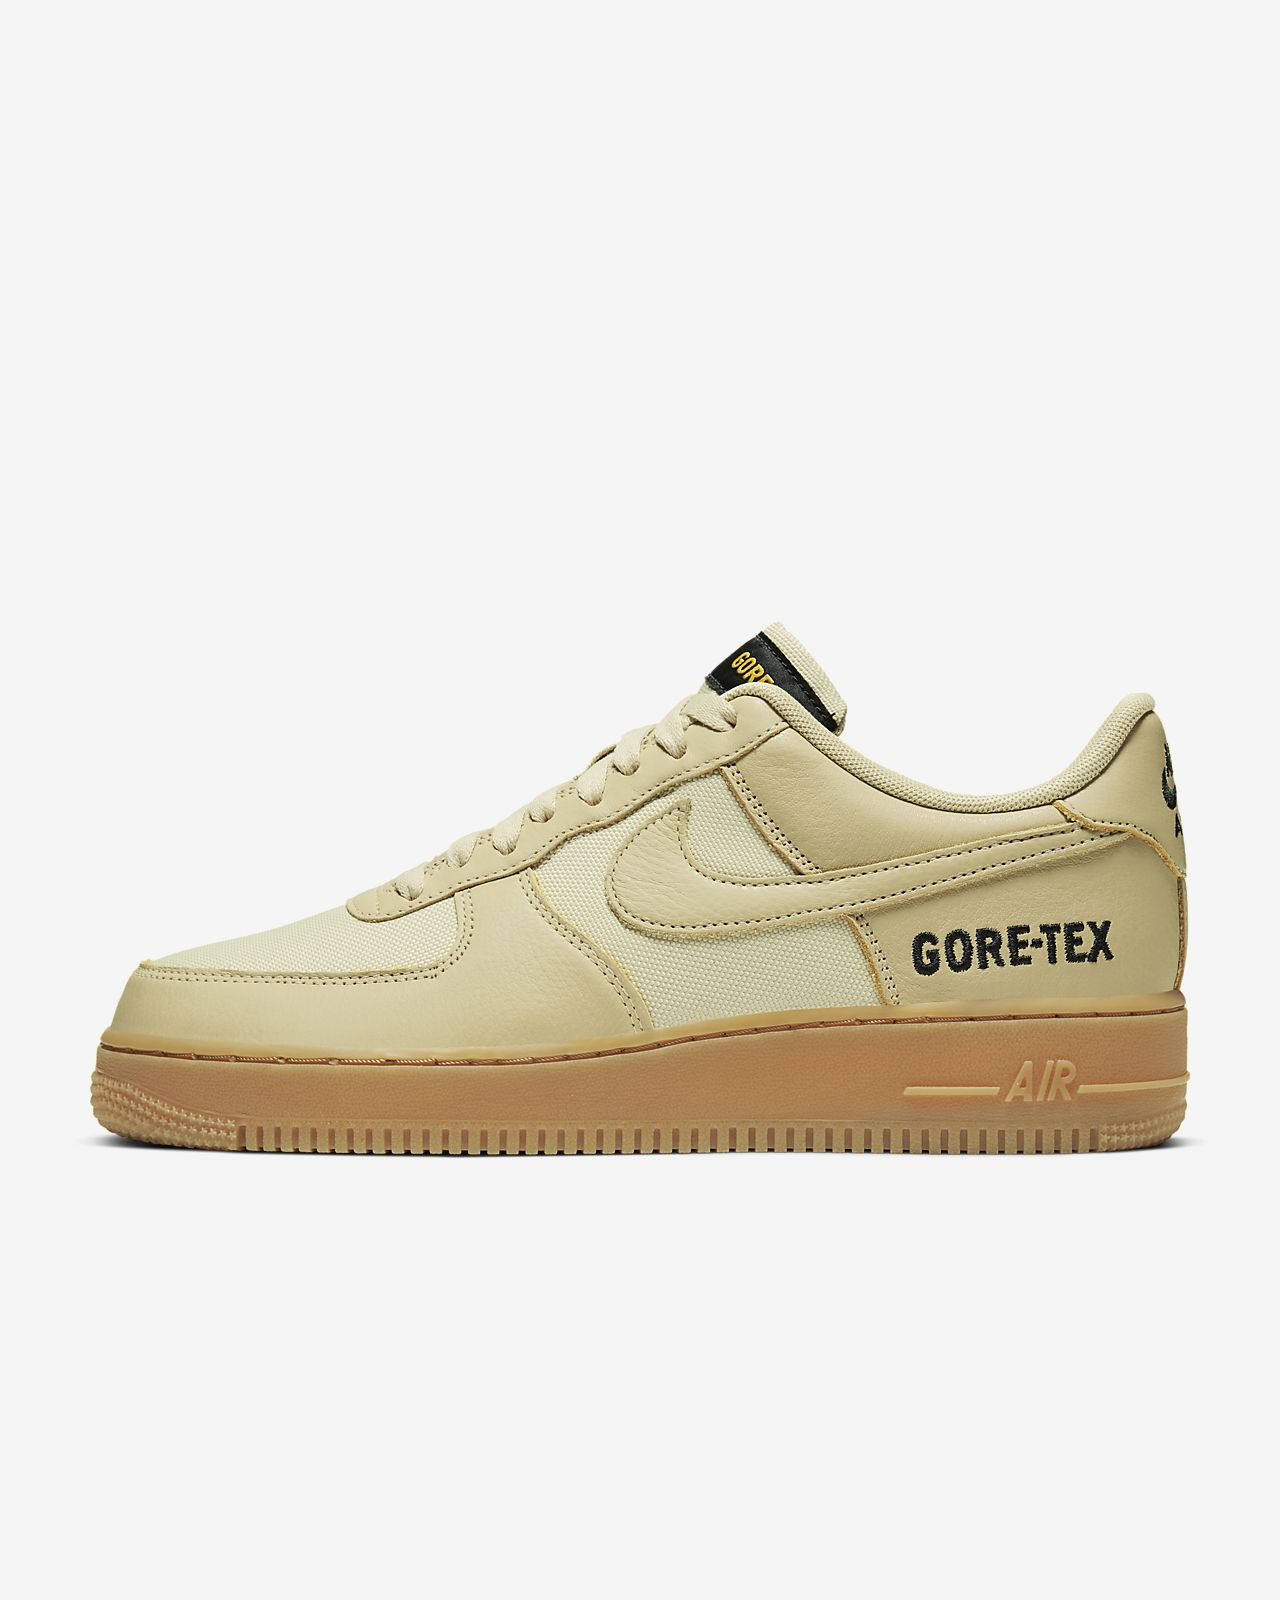 Nike Af1 Womens Nike Air Force One Cream Black Latest